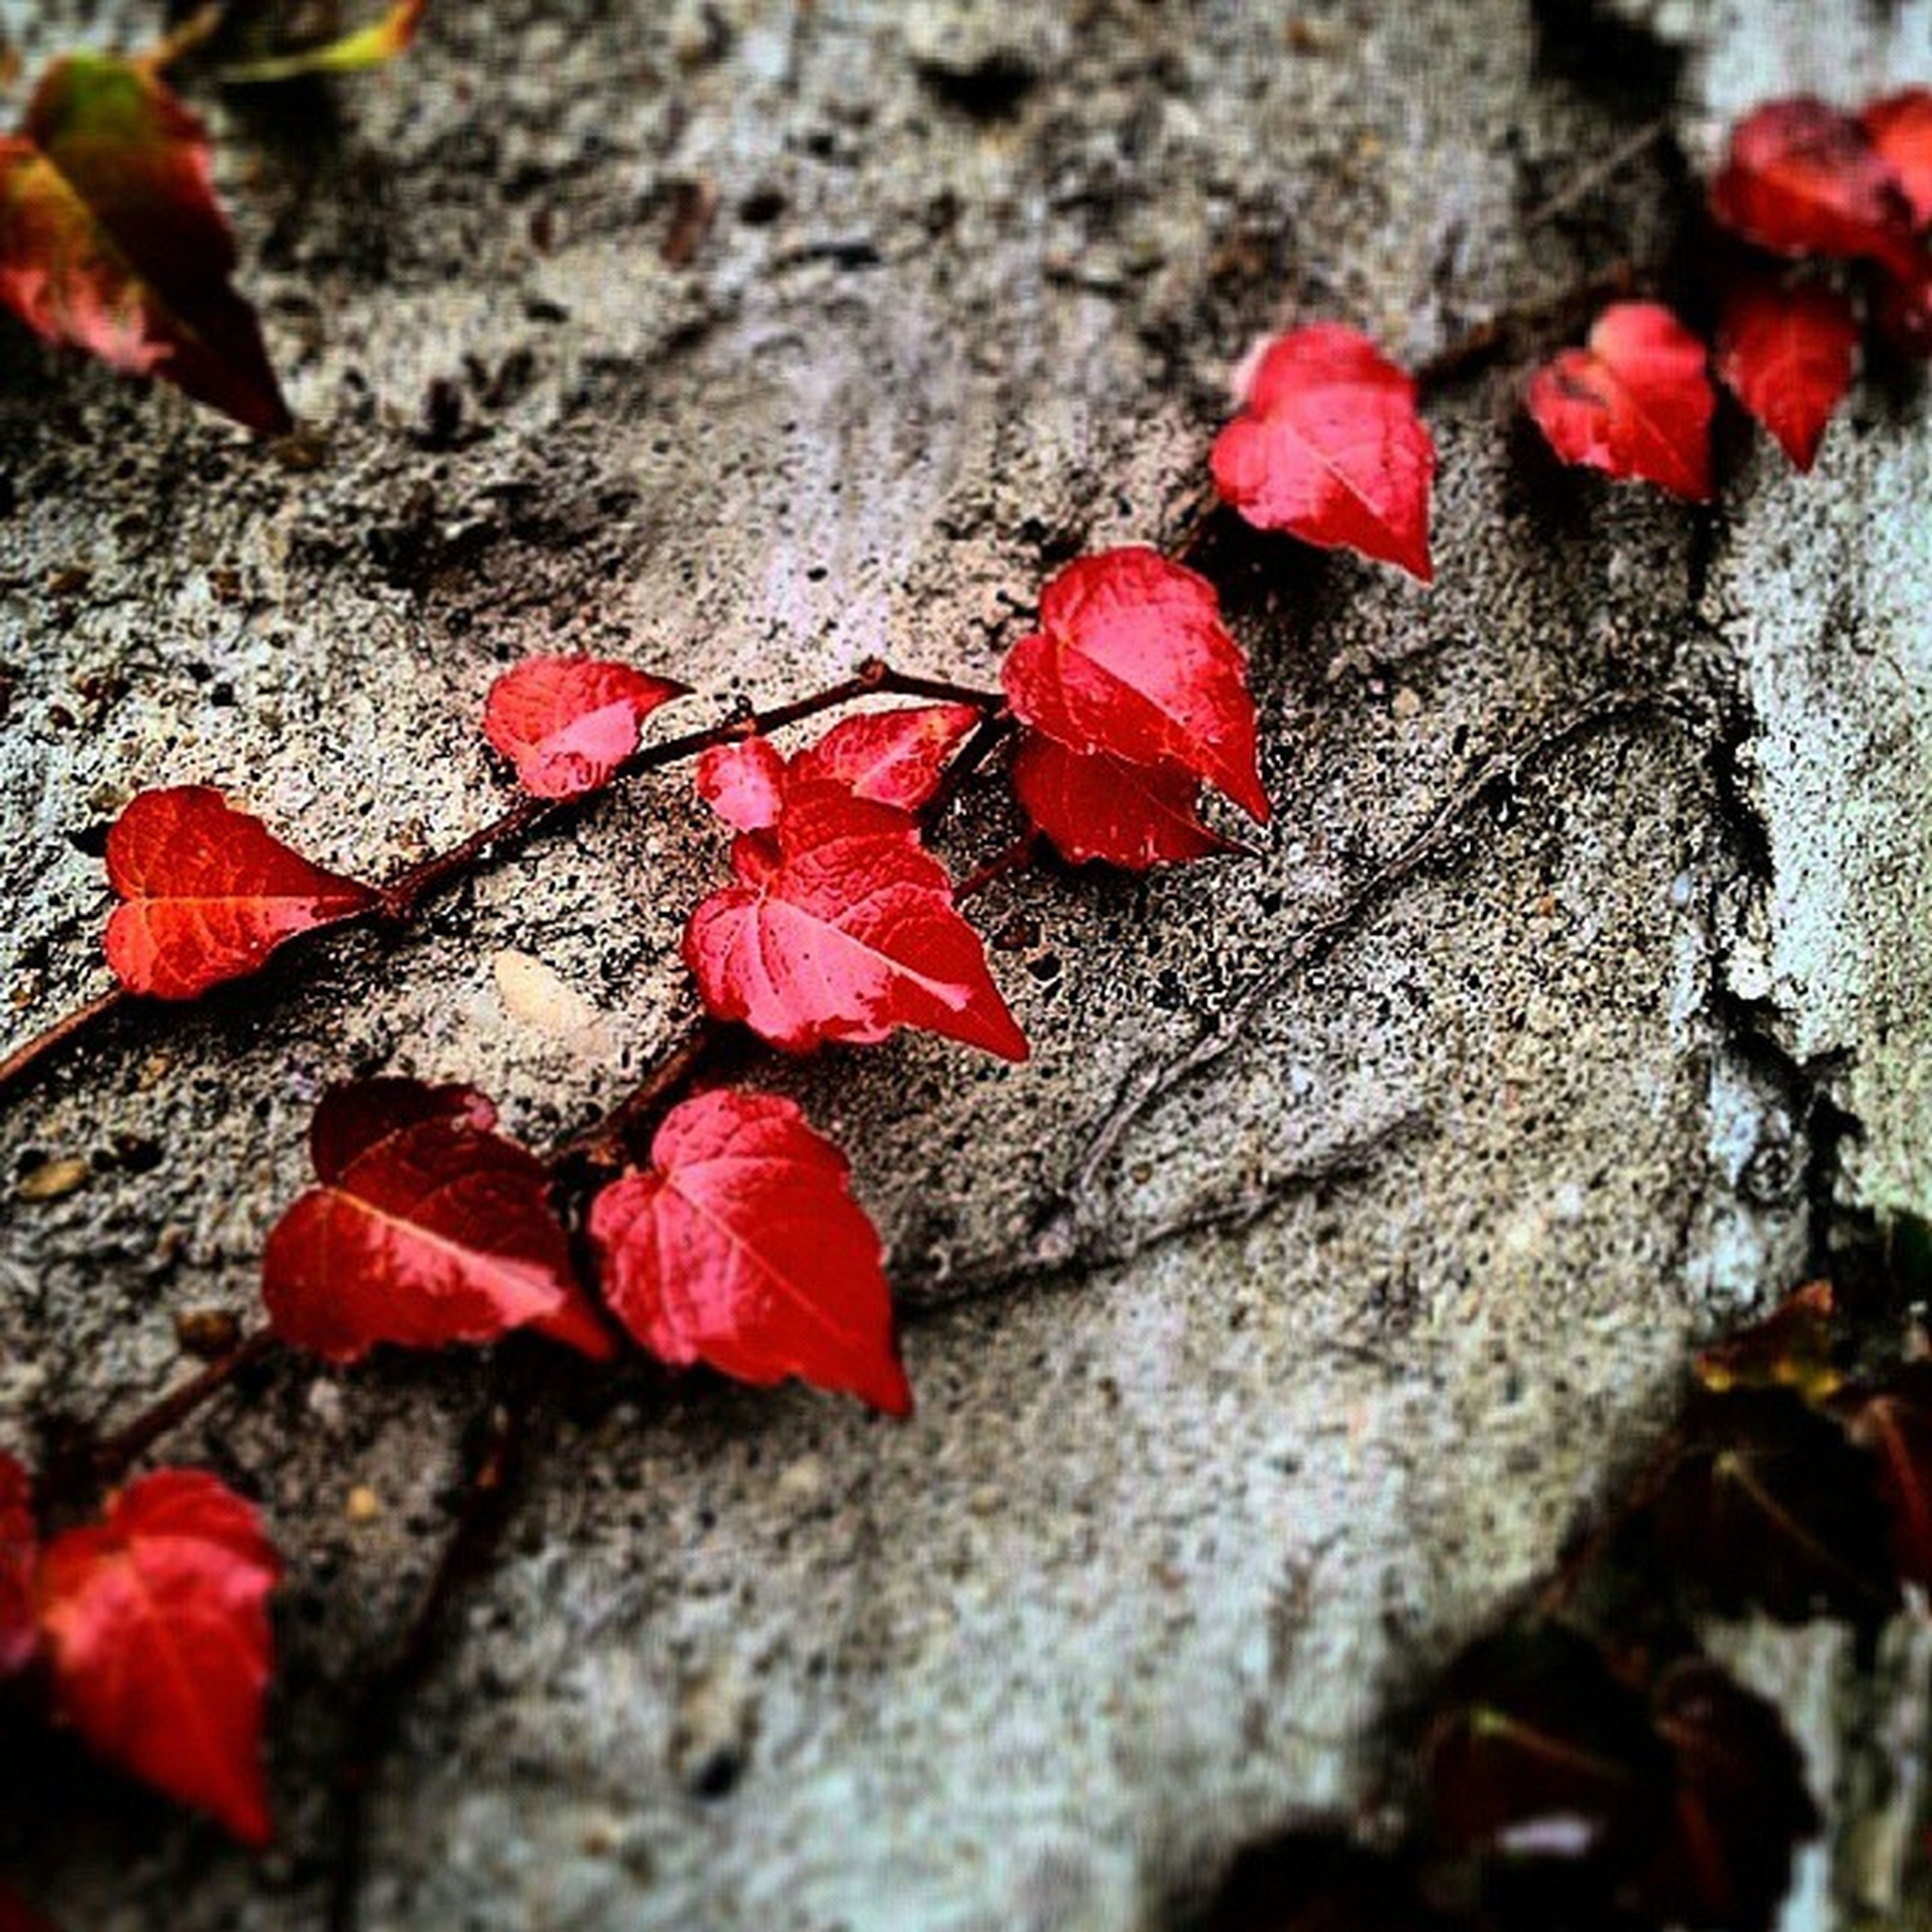 autumn, leaf, change, red, season, fallen, leaves, maple leaf, selective focus, dry, nature, close-up, high angle view, falling, ground, day, outdoors, beauty in nature, tranquility, no people